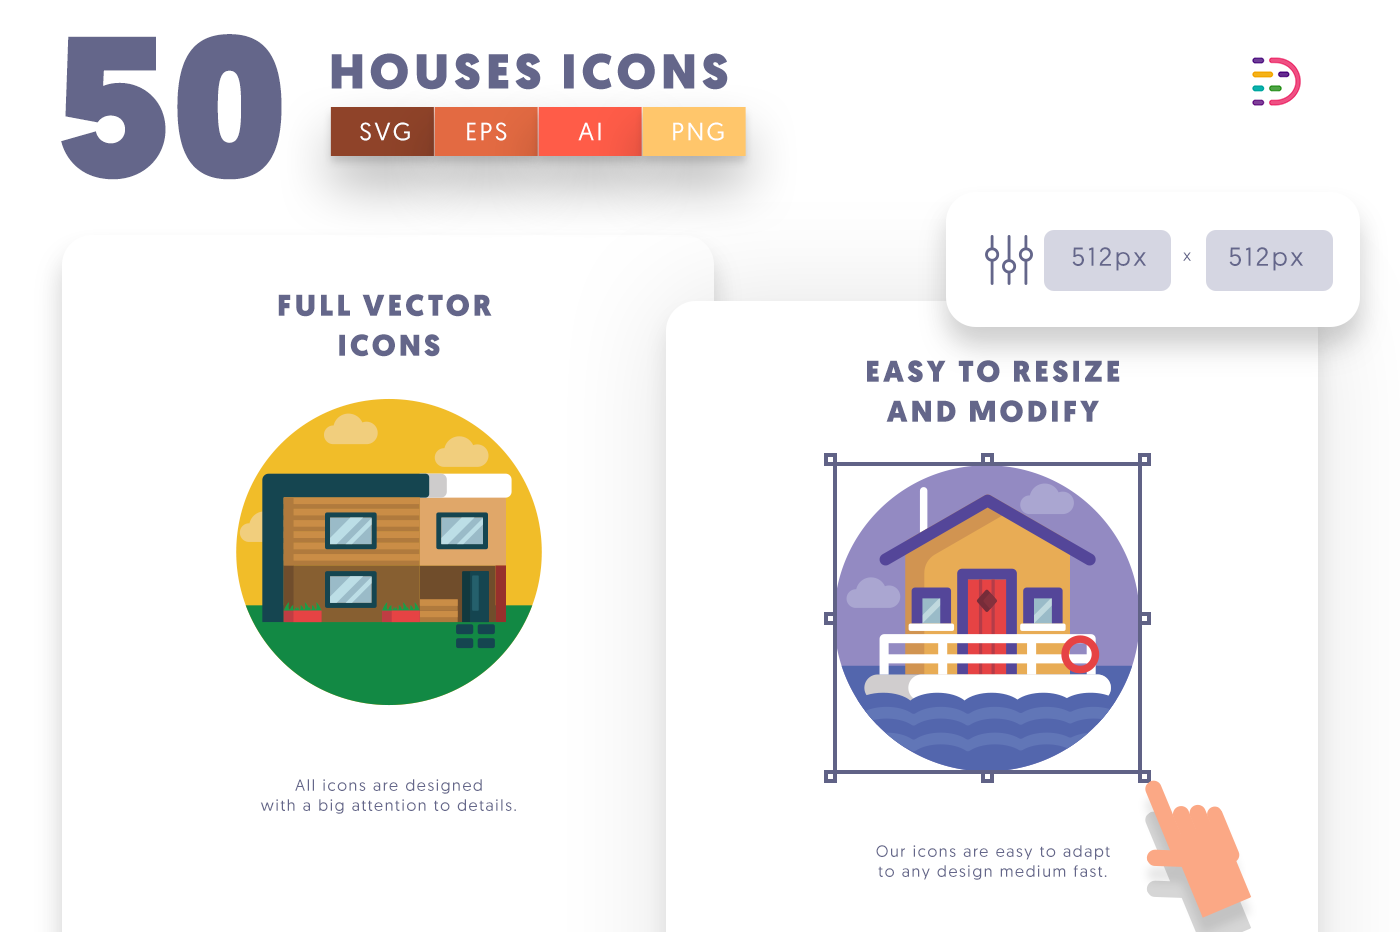 Full vector 50Houses Icons